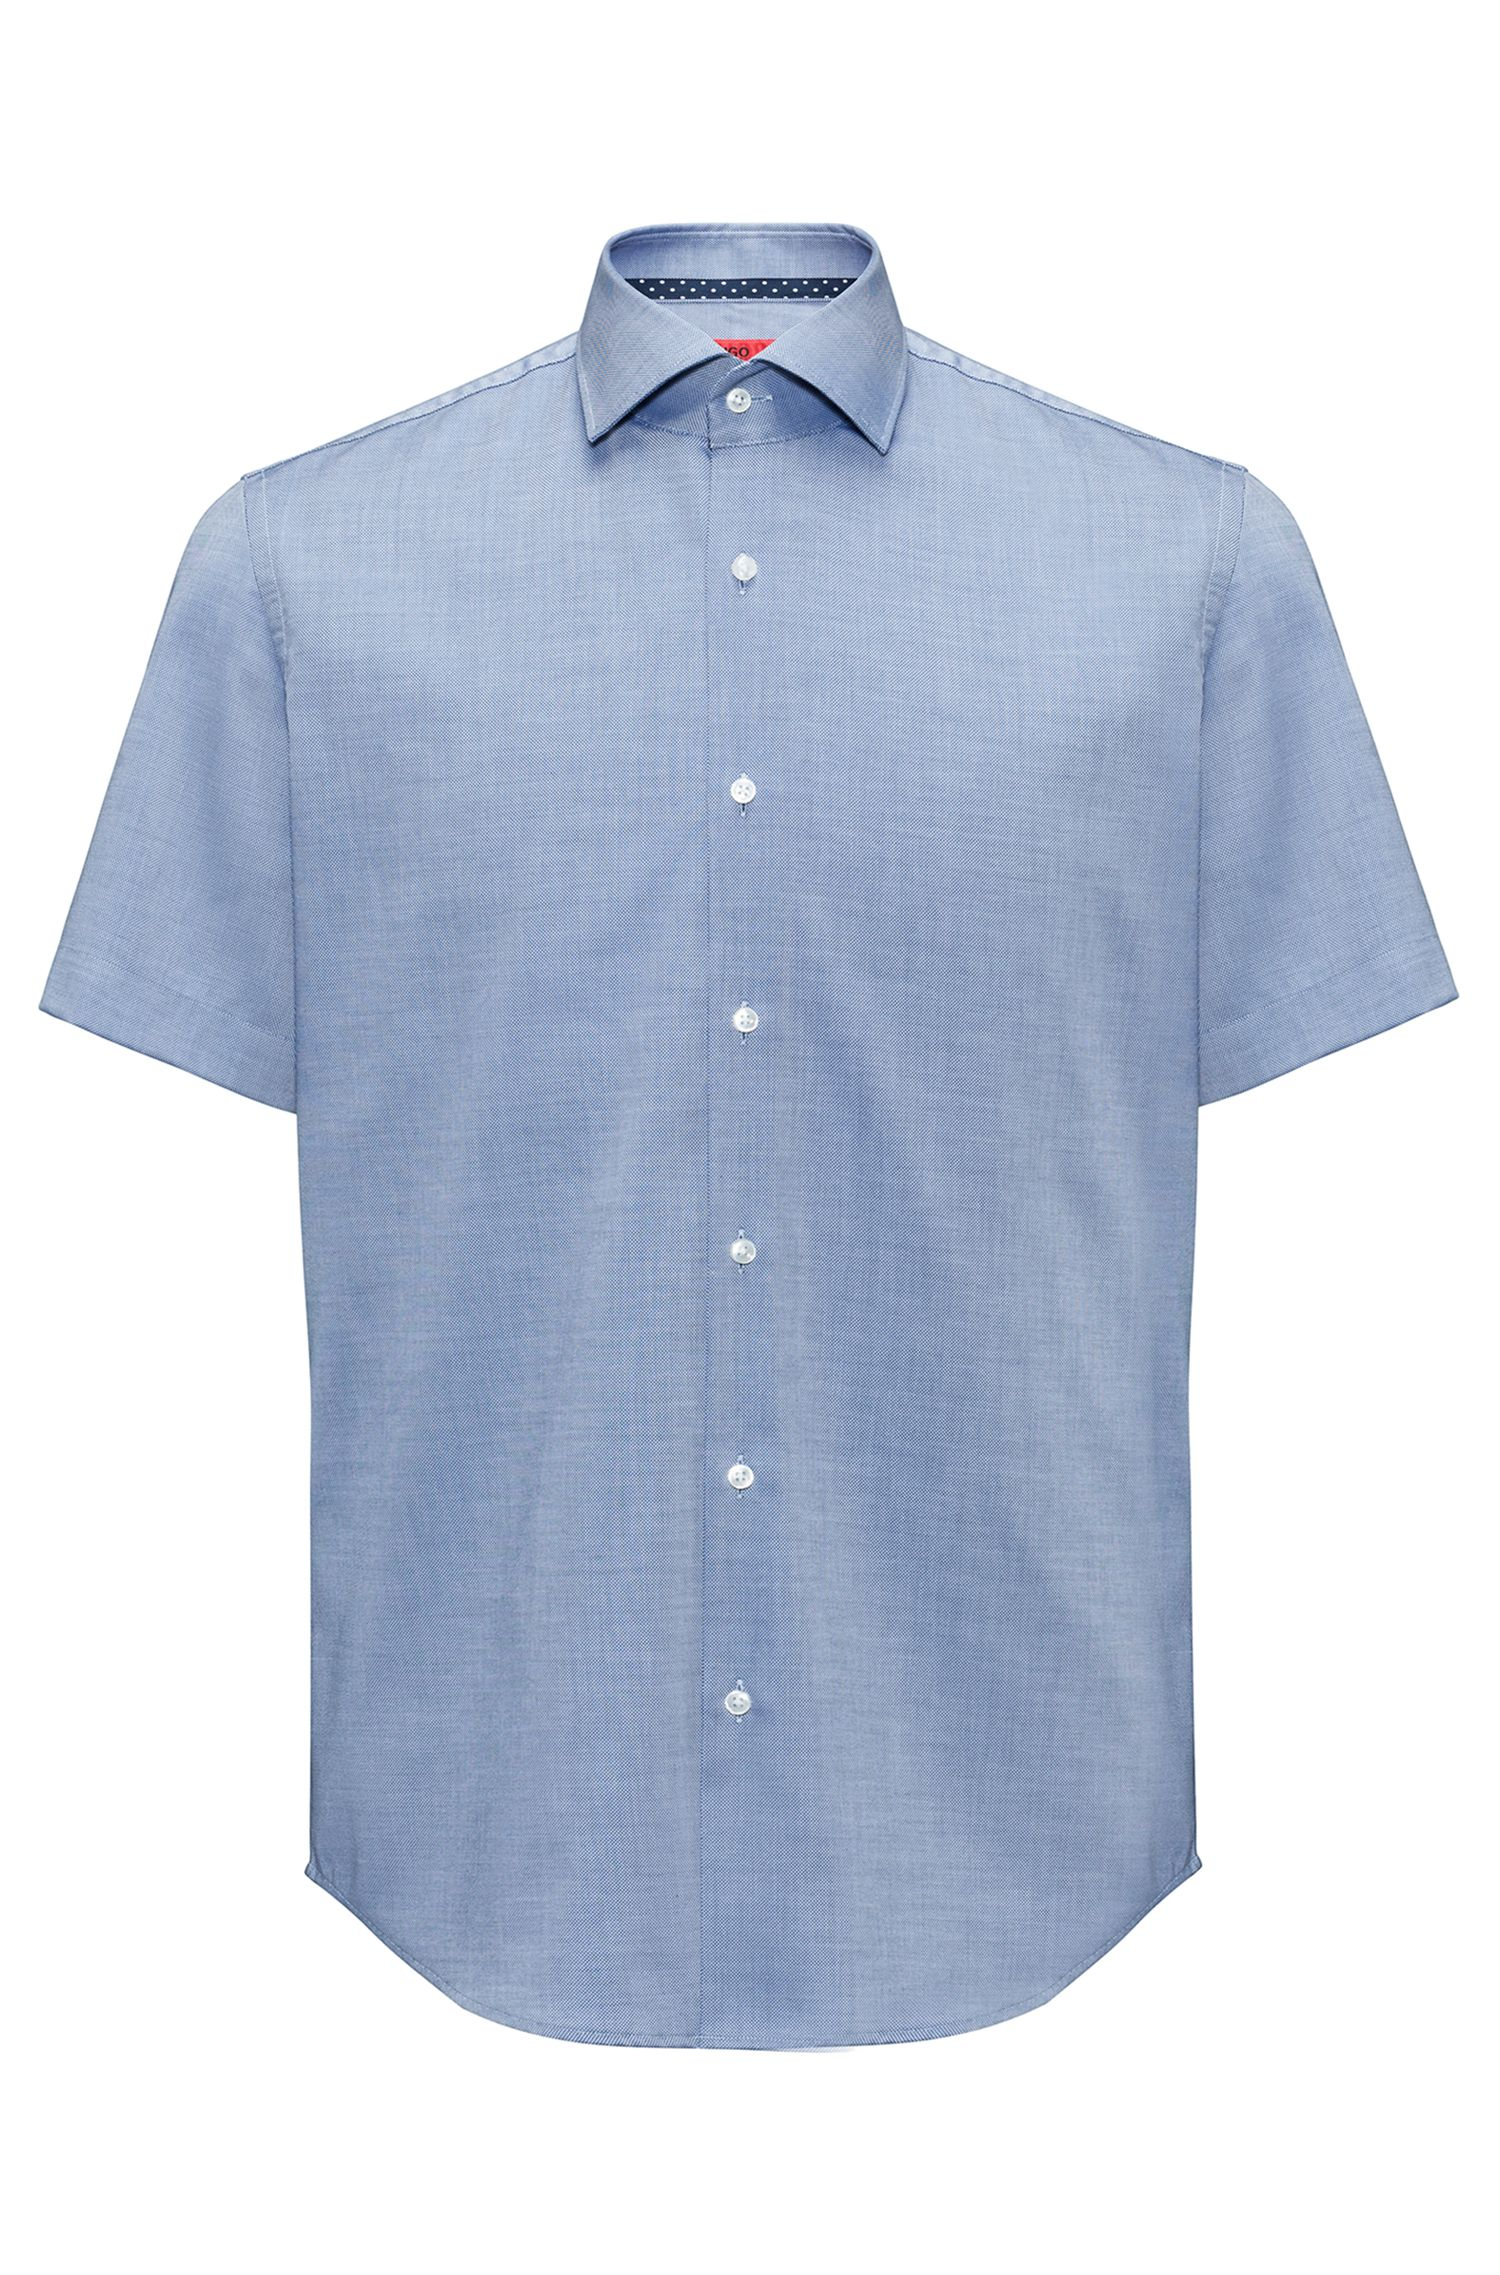 Regular-fit short-sleeved shirt in easy-iron cotton